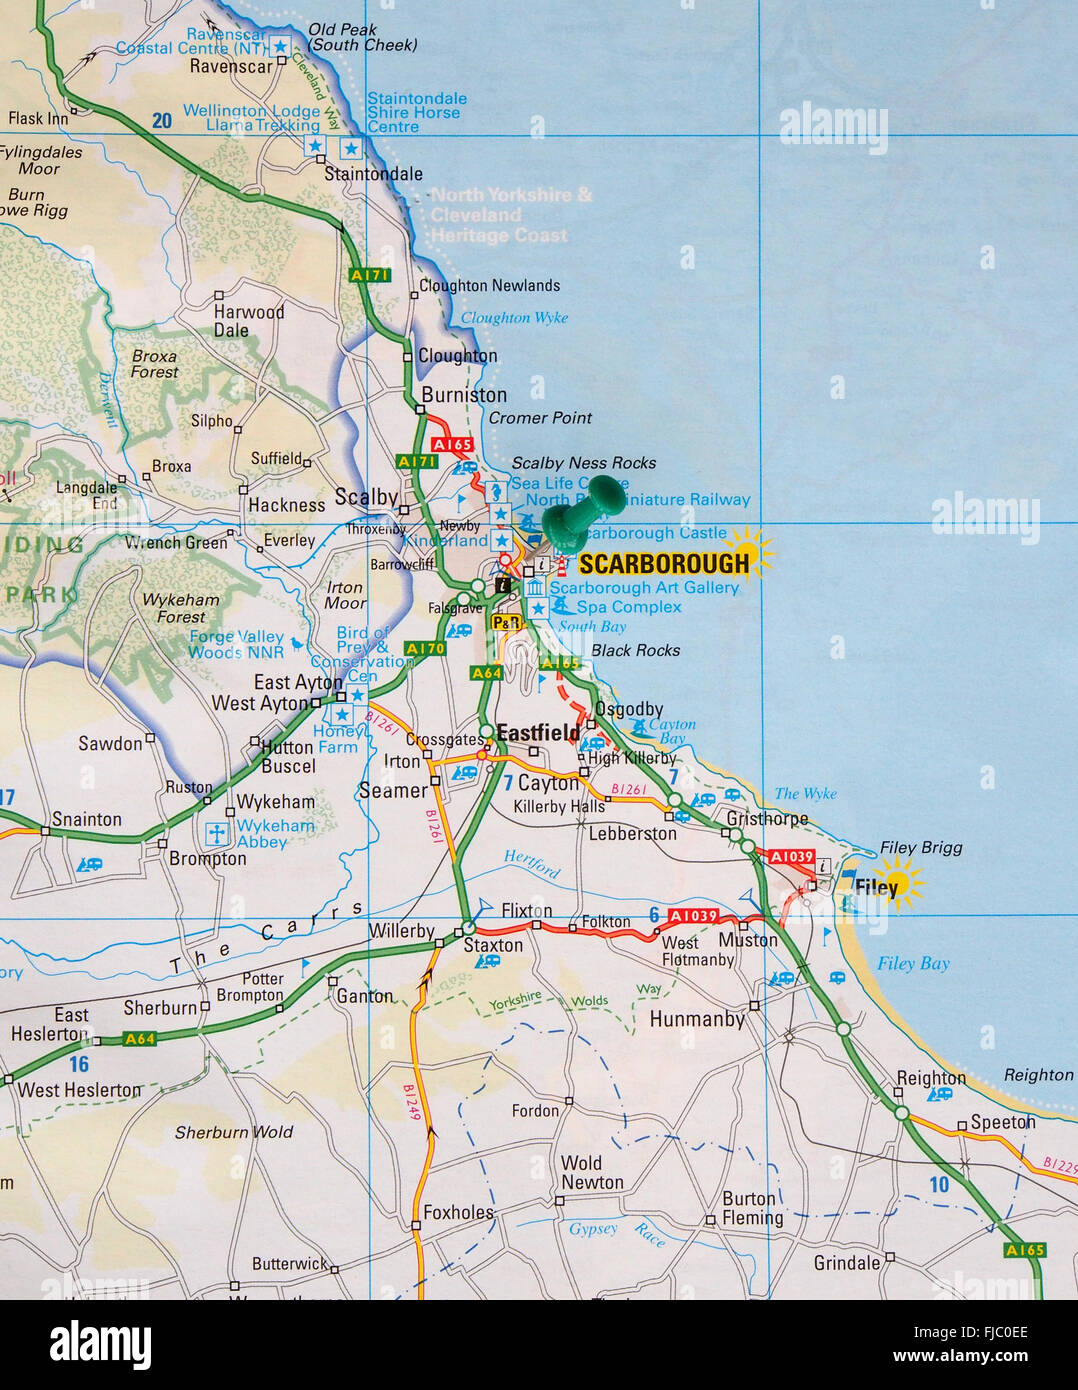 Road Map Of The East Coast Of England Showing Filey And